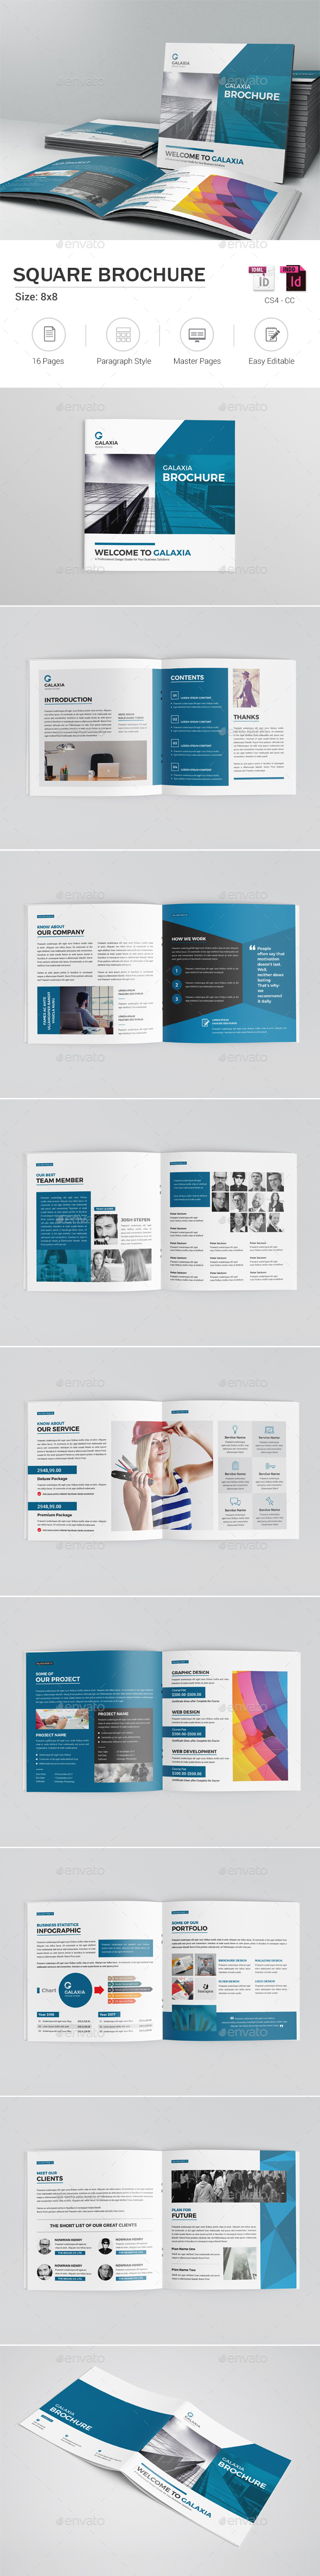 Square Brochure - Corporate Brochures